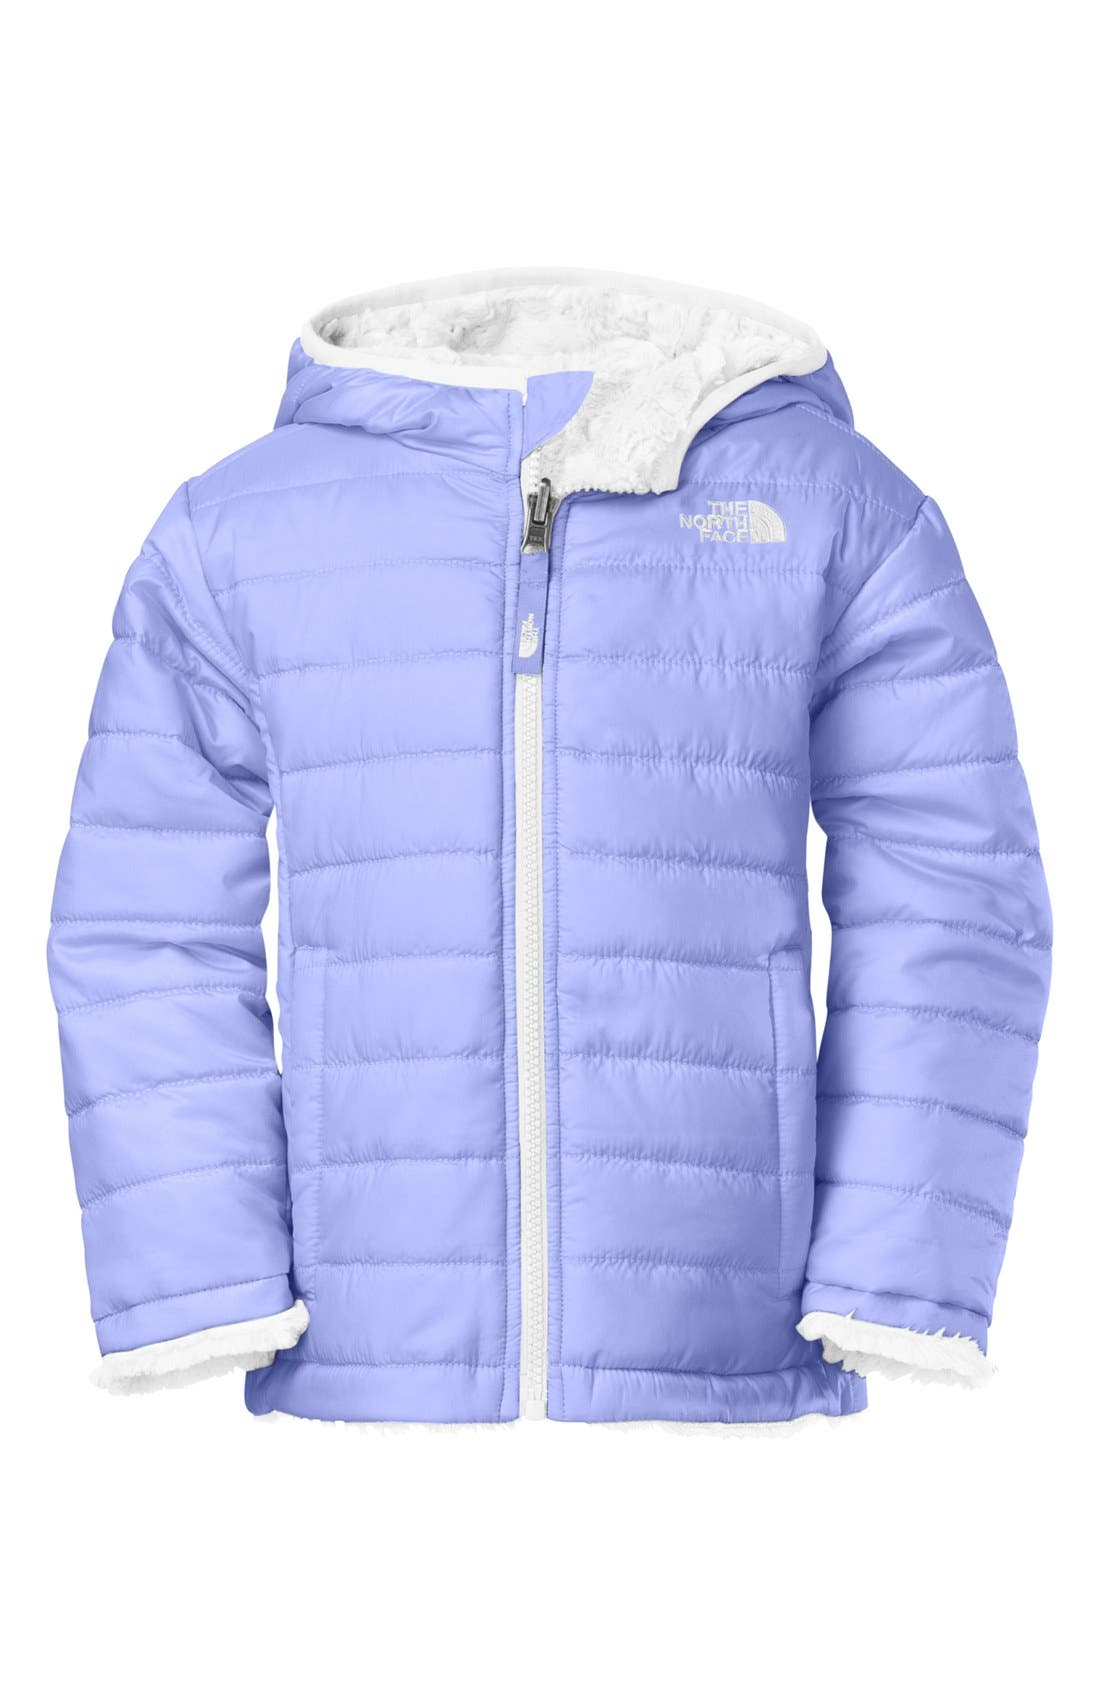 Alternate Image 1 Selected - The North Face 'Mossbud Swirl' Reversible Water Repellent Jacket (Little Girls)